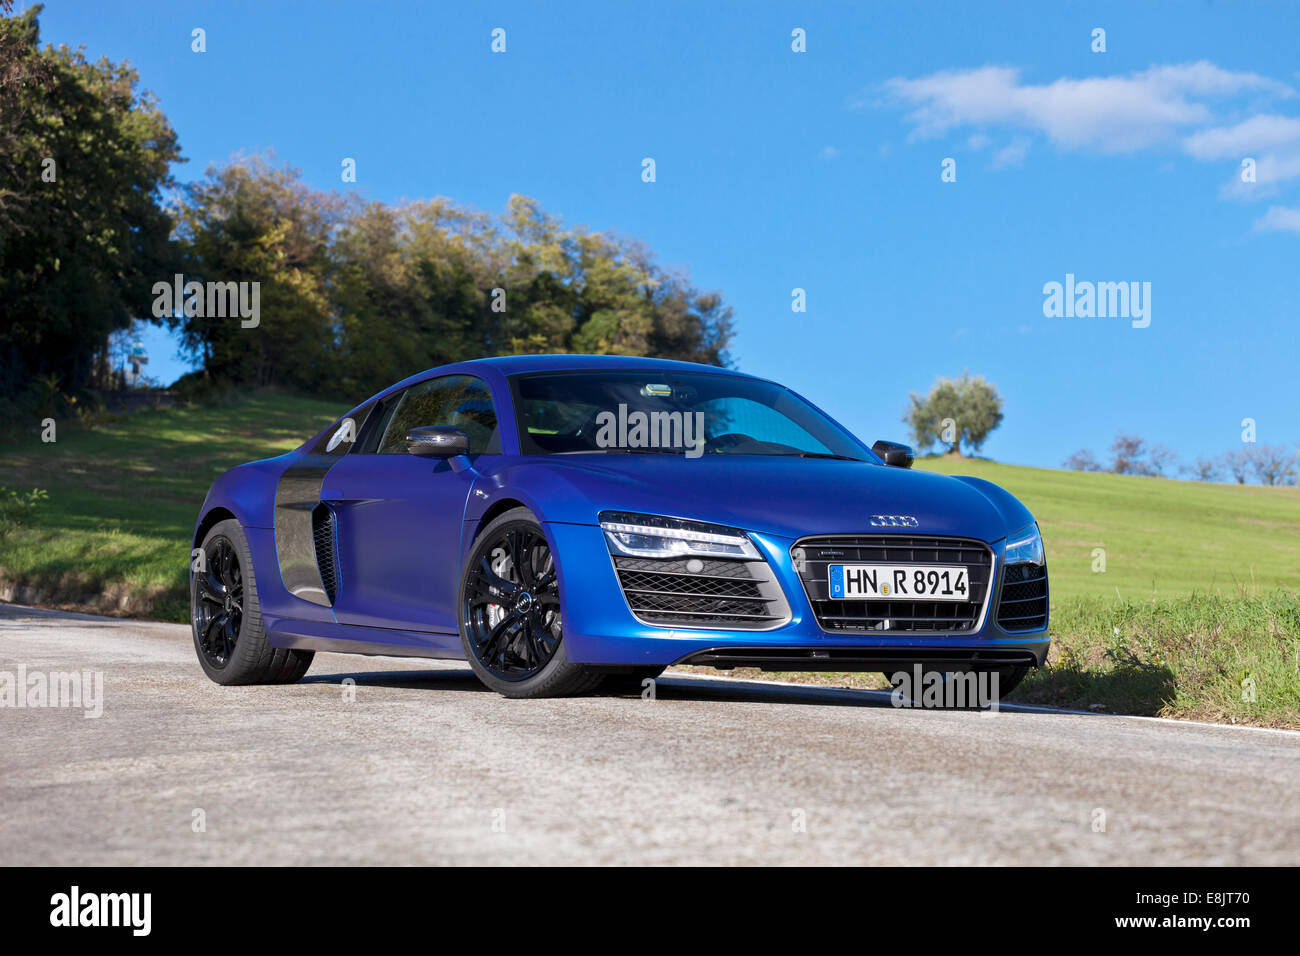 audi r8 v10 plus stockfotos audi r8 v10 plus bilder alamy. Black Bedroom Furniture Sets. Home Design Ideas